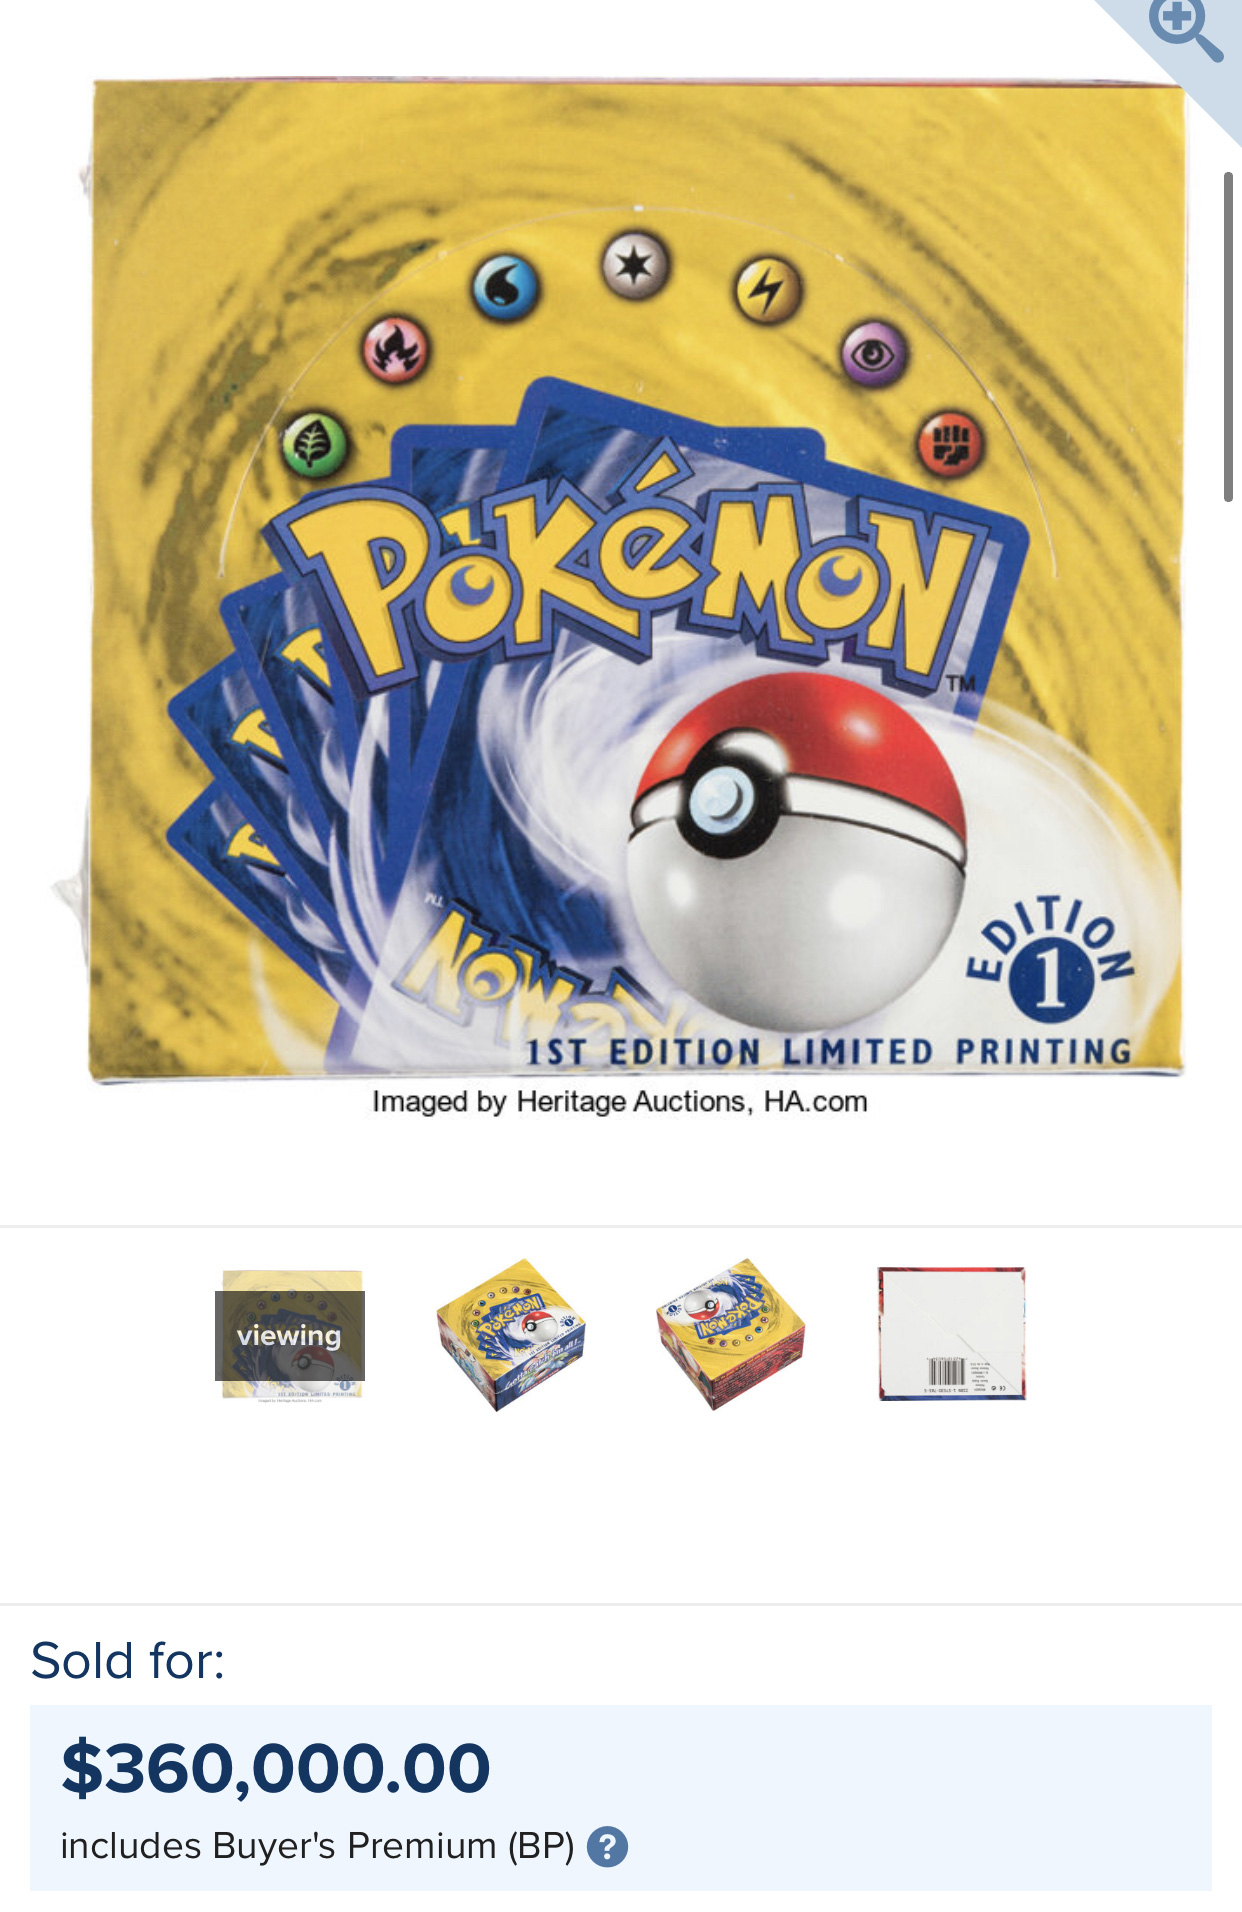 Screenshot of Pokemon card boost box selling at auction for $360k.